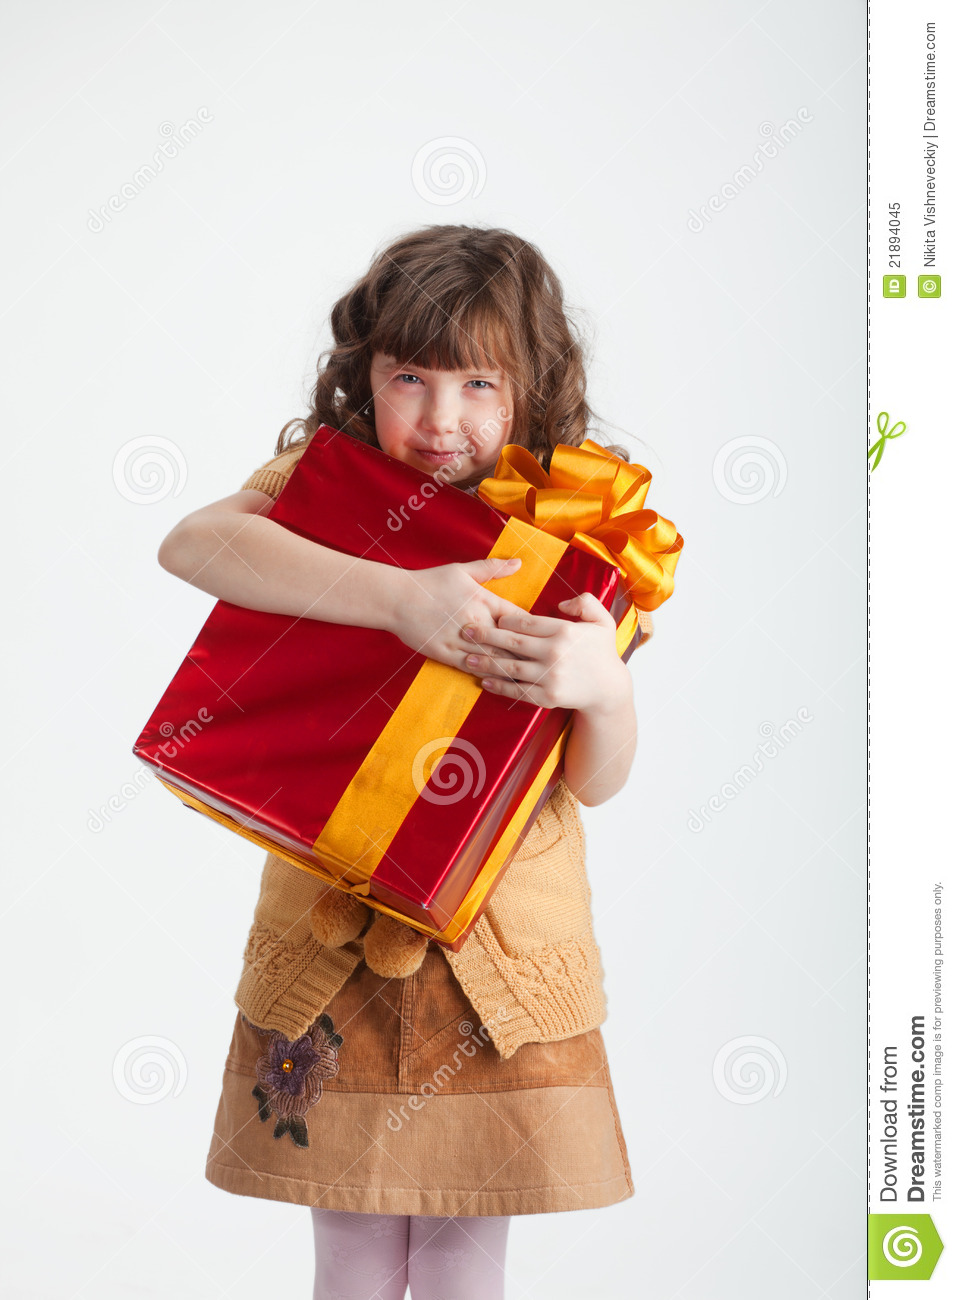 Greedy girl with a gift